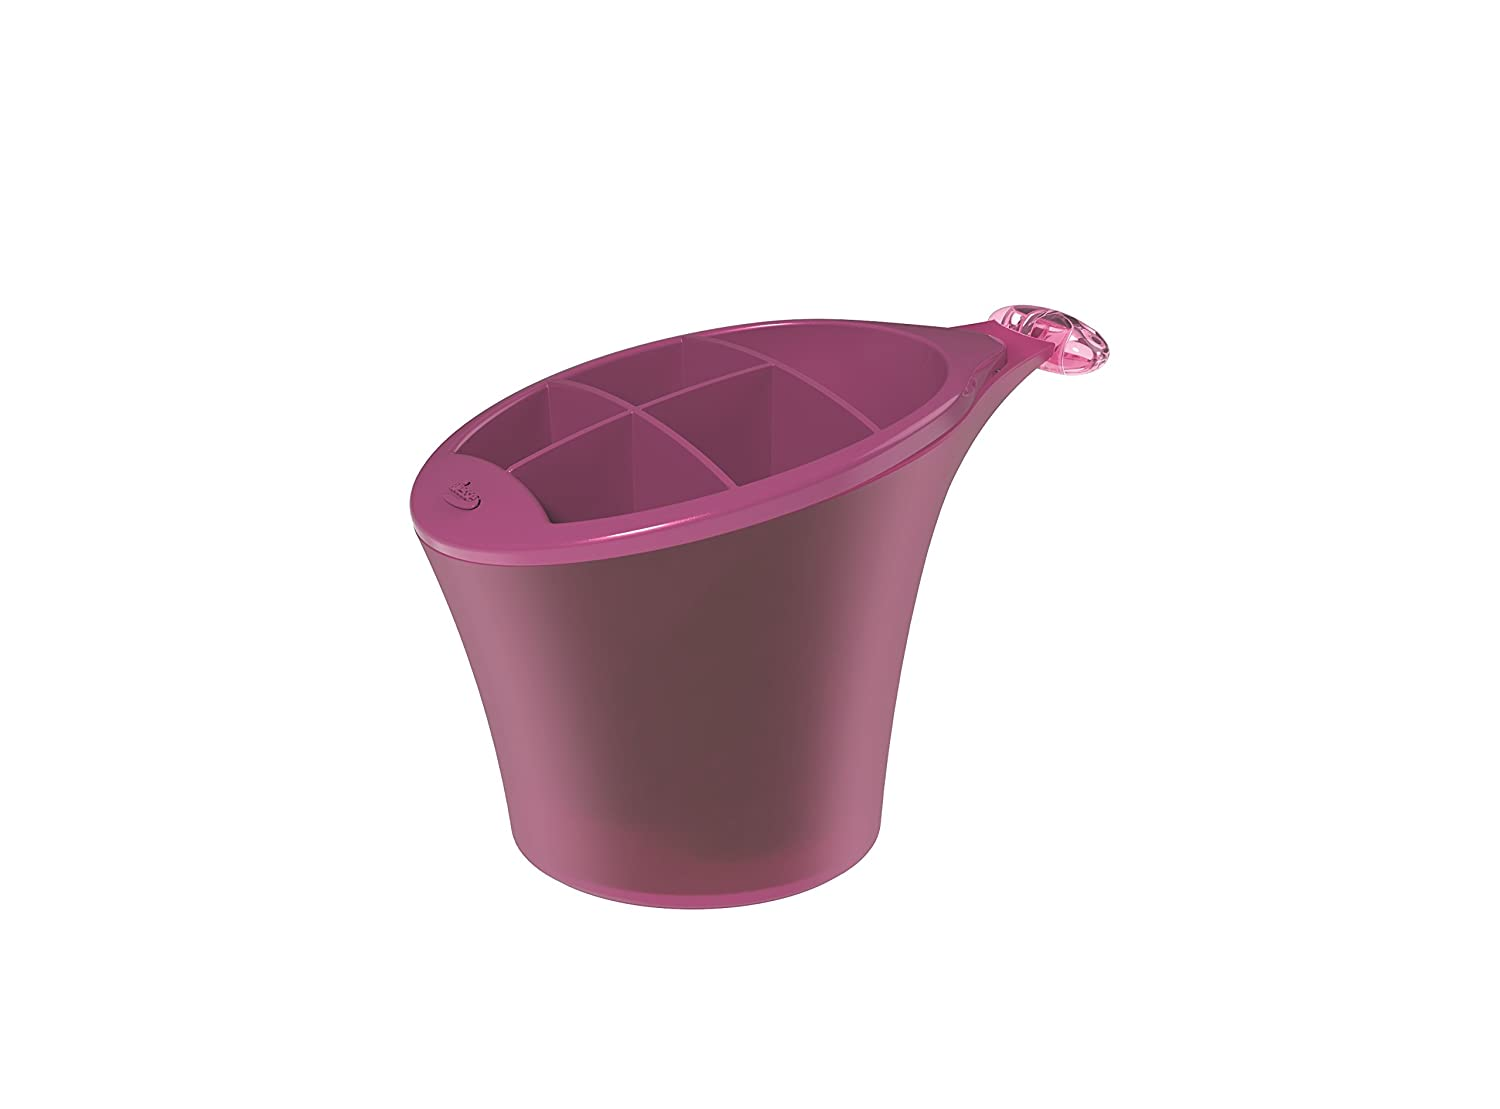 BIESSE CASA 09012 Cutlery Drainer with Handle (Violet) ECO-PLAST